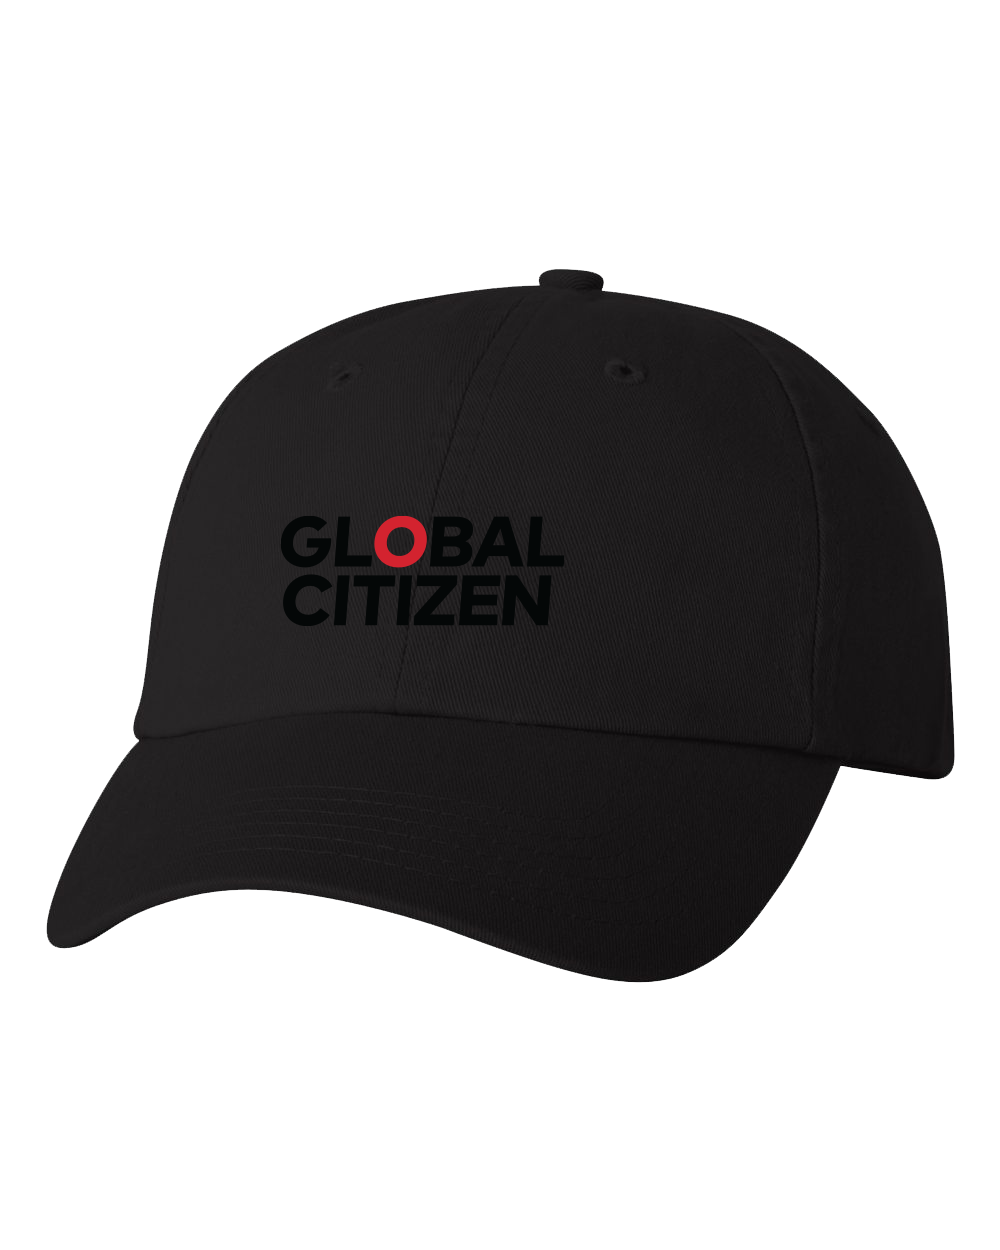 Global Citizen Black Cap